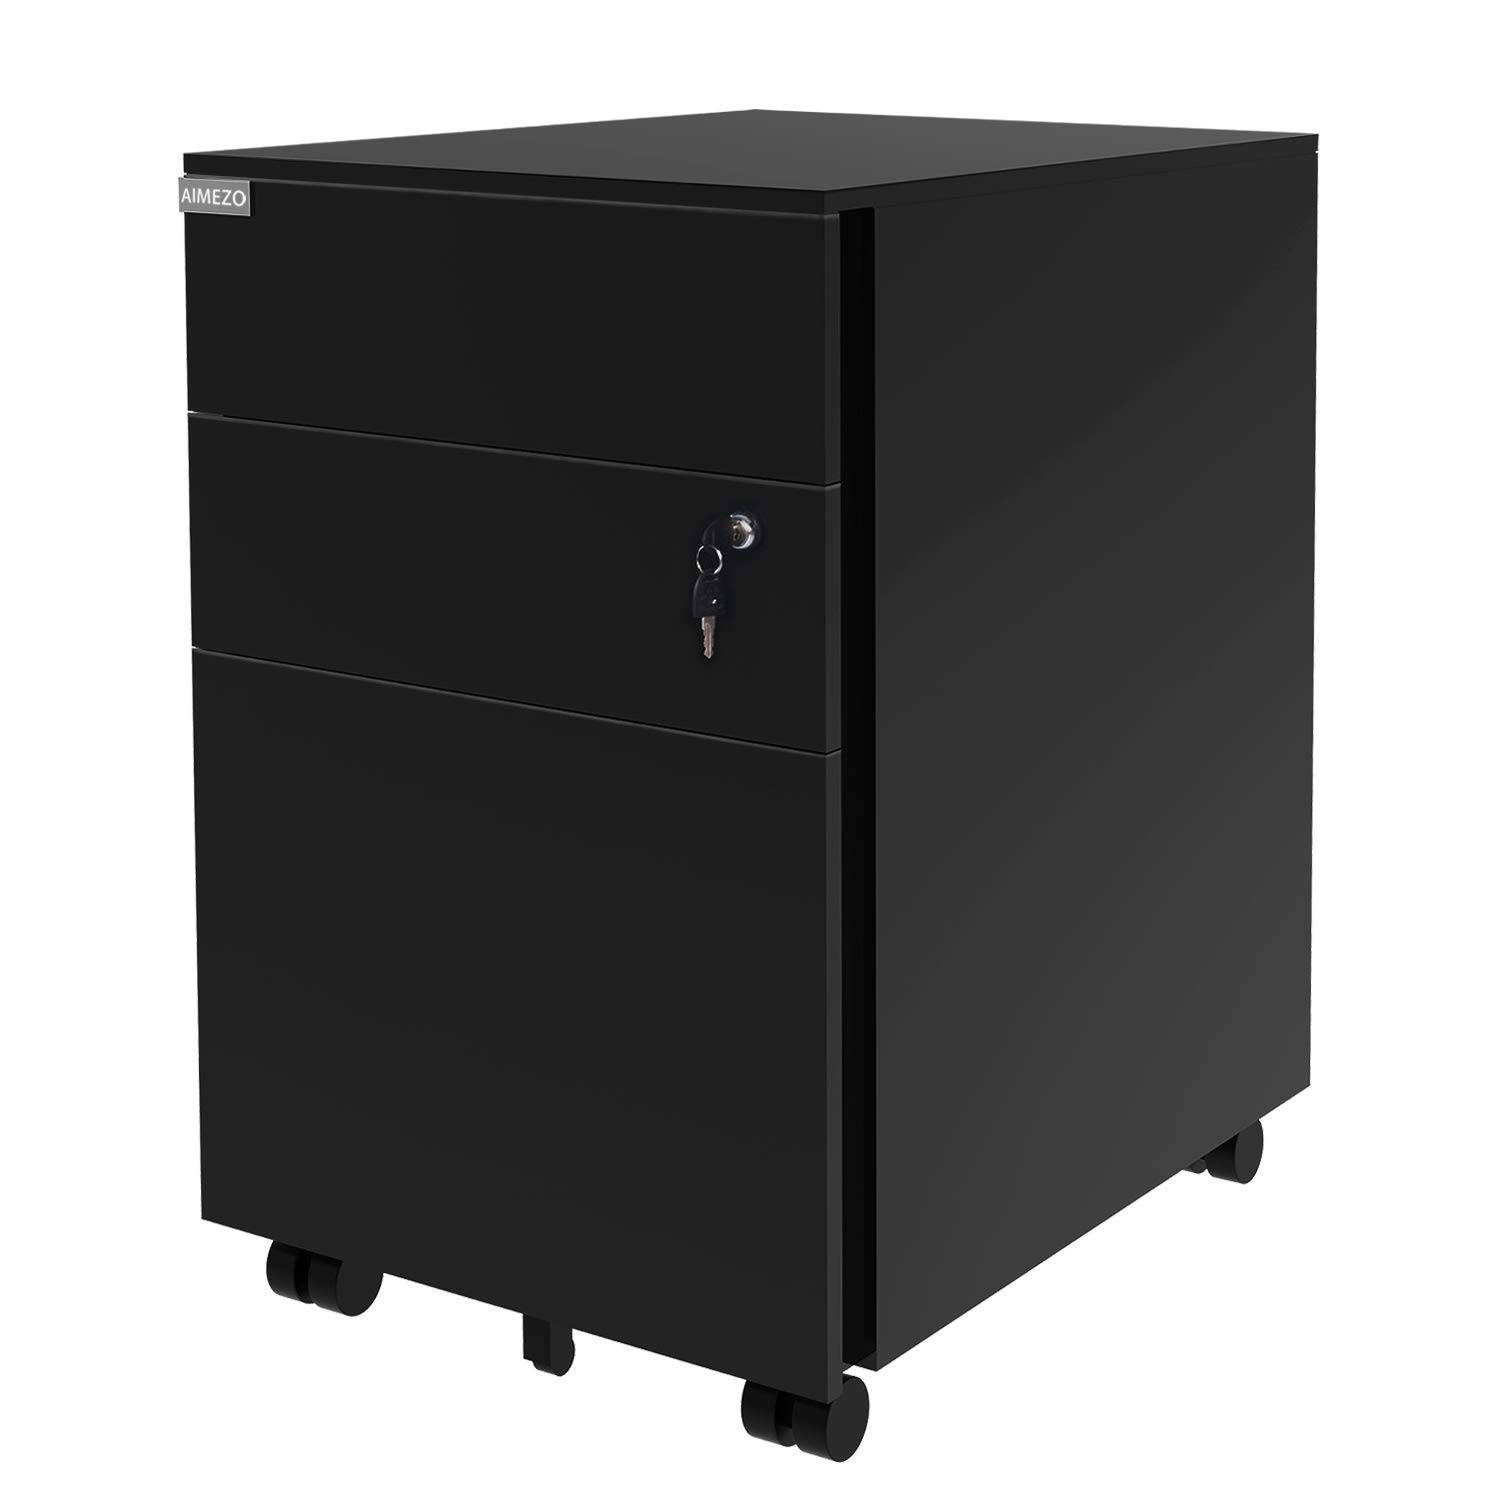 AIMEZO Metal Solid Steel 3 Sliding Drawer Pedestal File Storage Mobile File Cabinet with Lock Key and 5 Rolling Casters